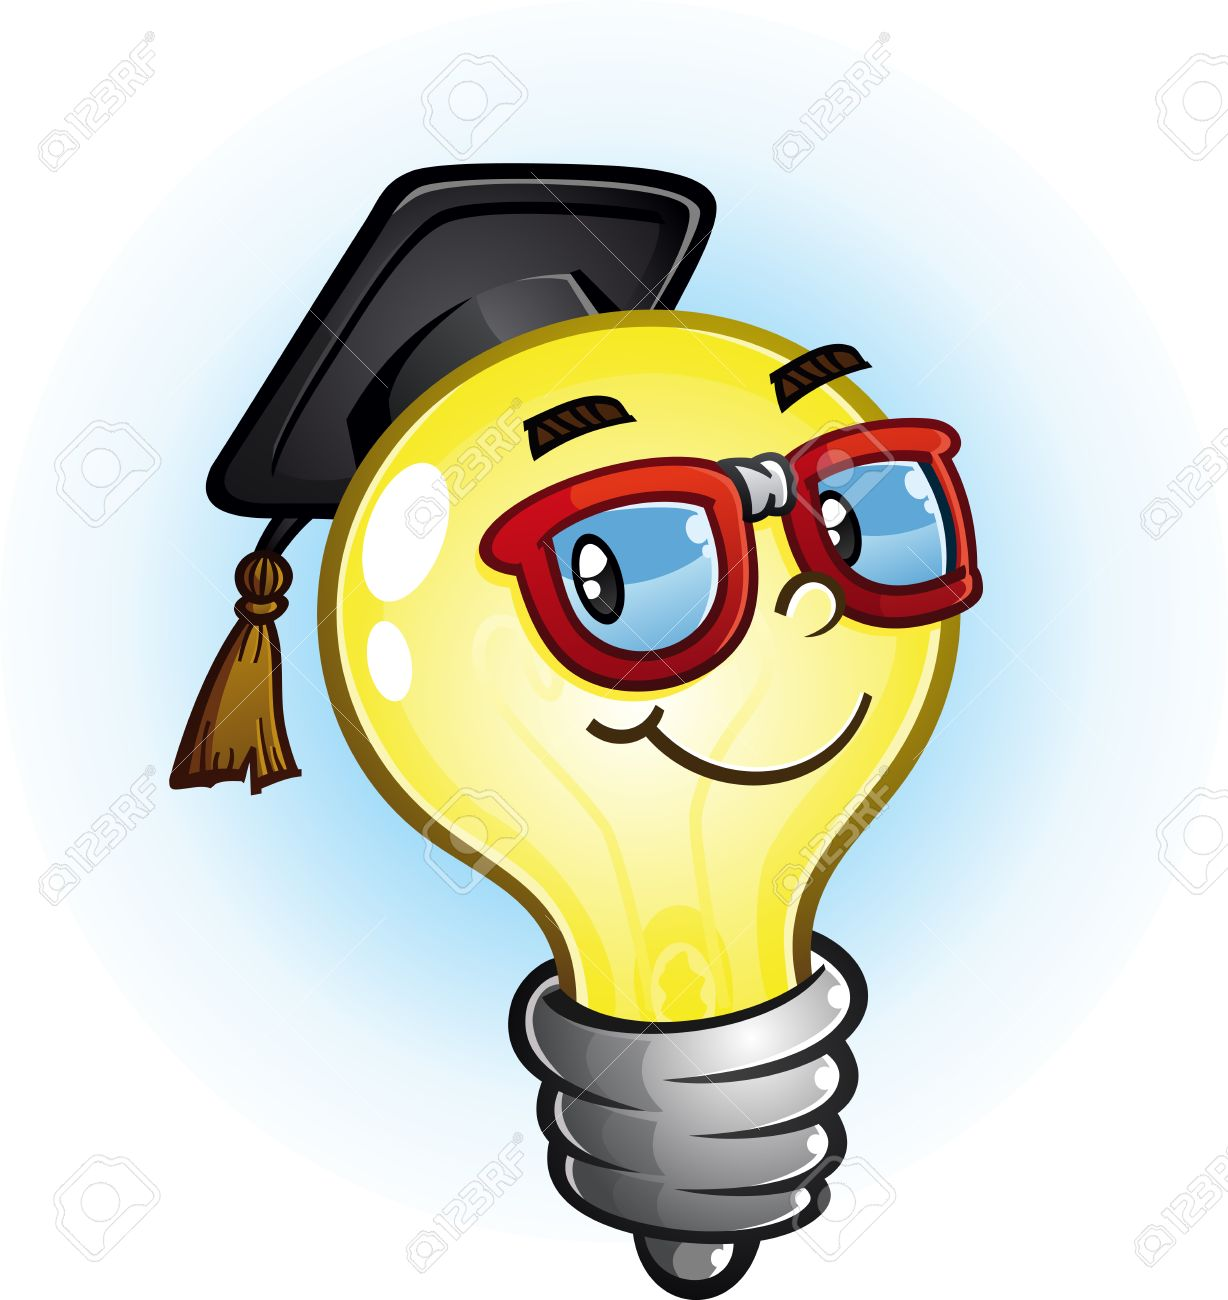 Light Bulb Education Cartoon Character Royalty Free Cliparts Vectors And Stock Illustration Image 33468446